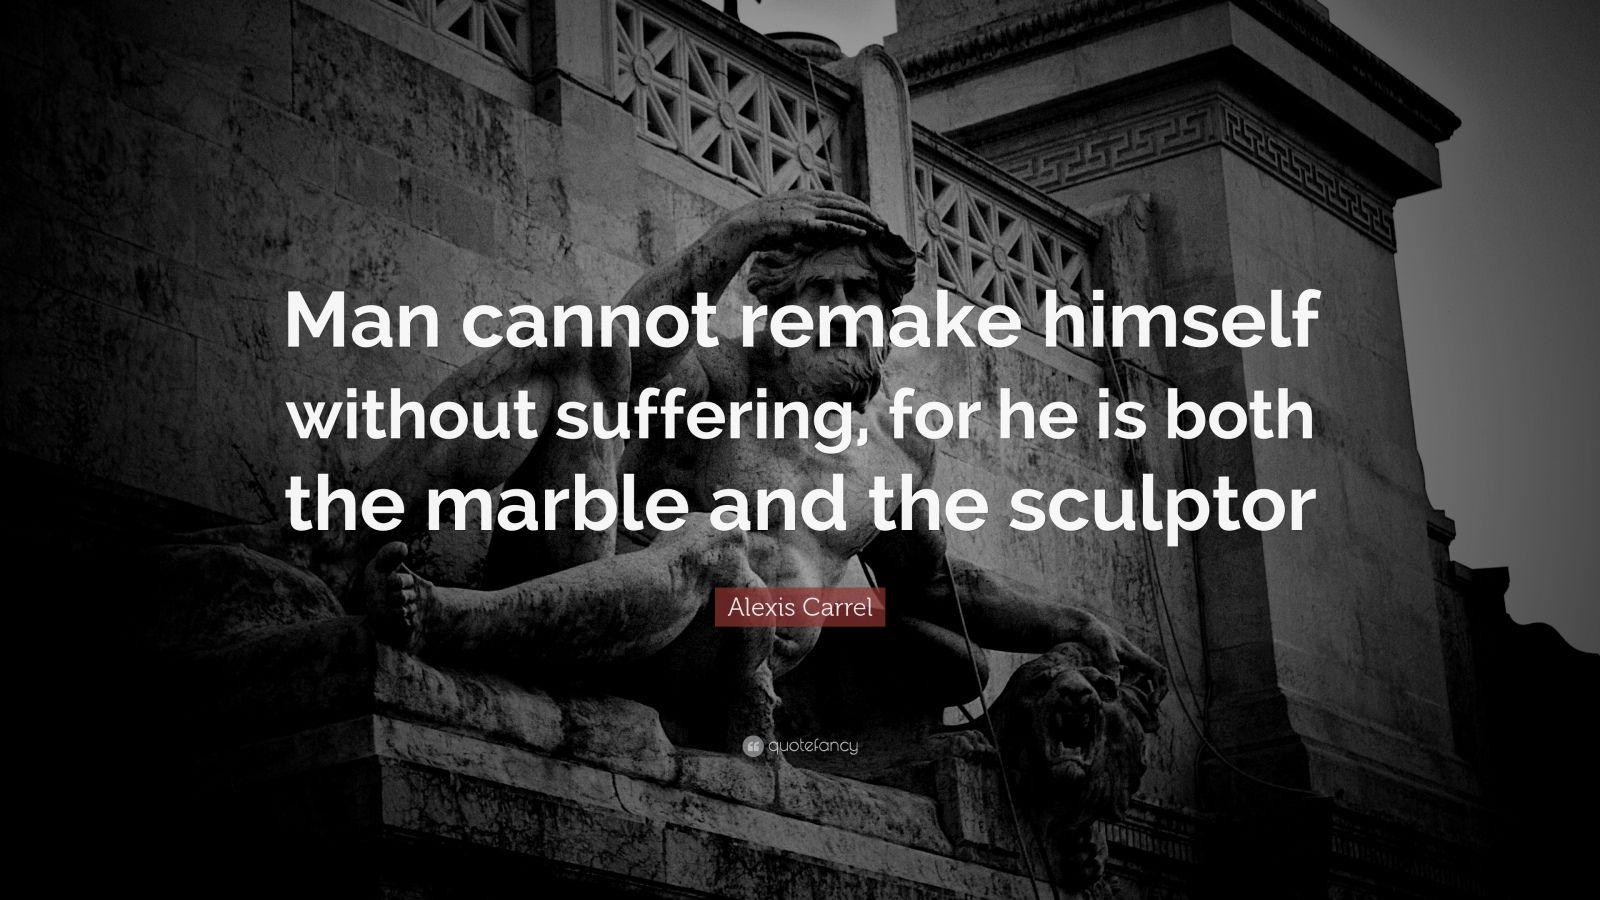 Motivational Quotes Man Cannot Remake Himself Without Suffering For He Is Both The